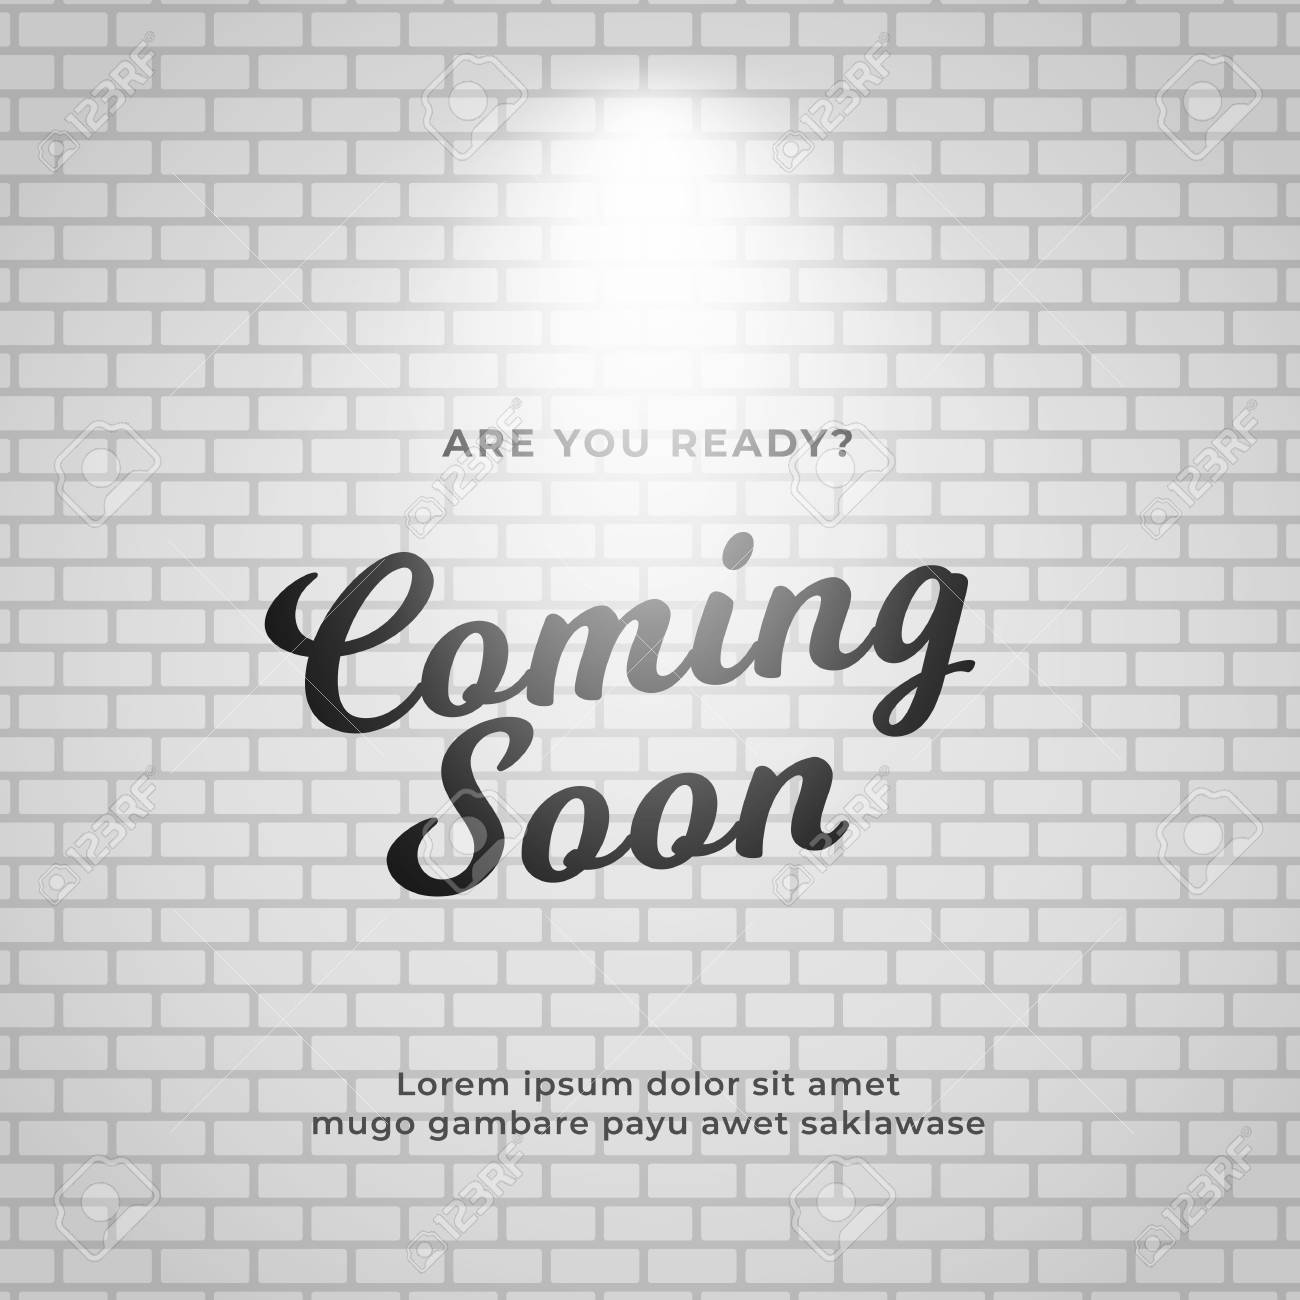 Coming Soon Poster Background Design White Brick Wall Backdrop Royalty Free Cliparts Vectors And Stock Illustration Image 120481339